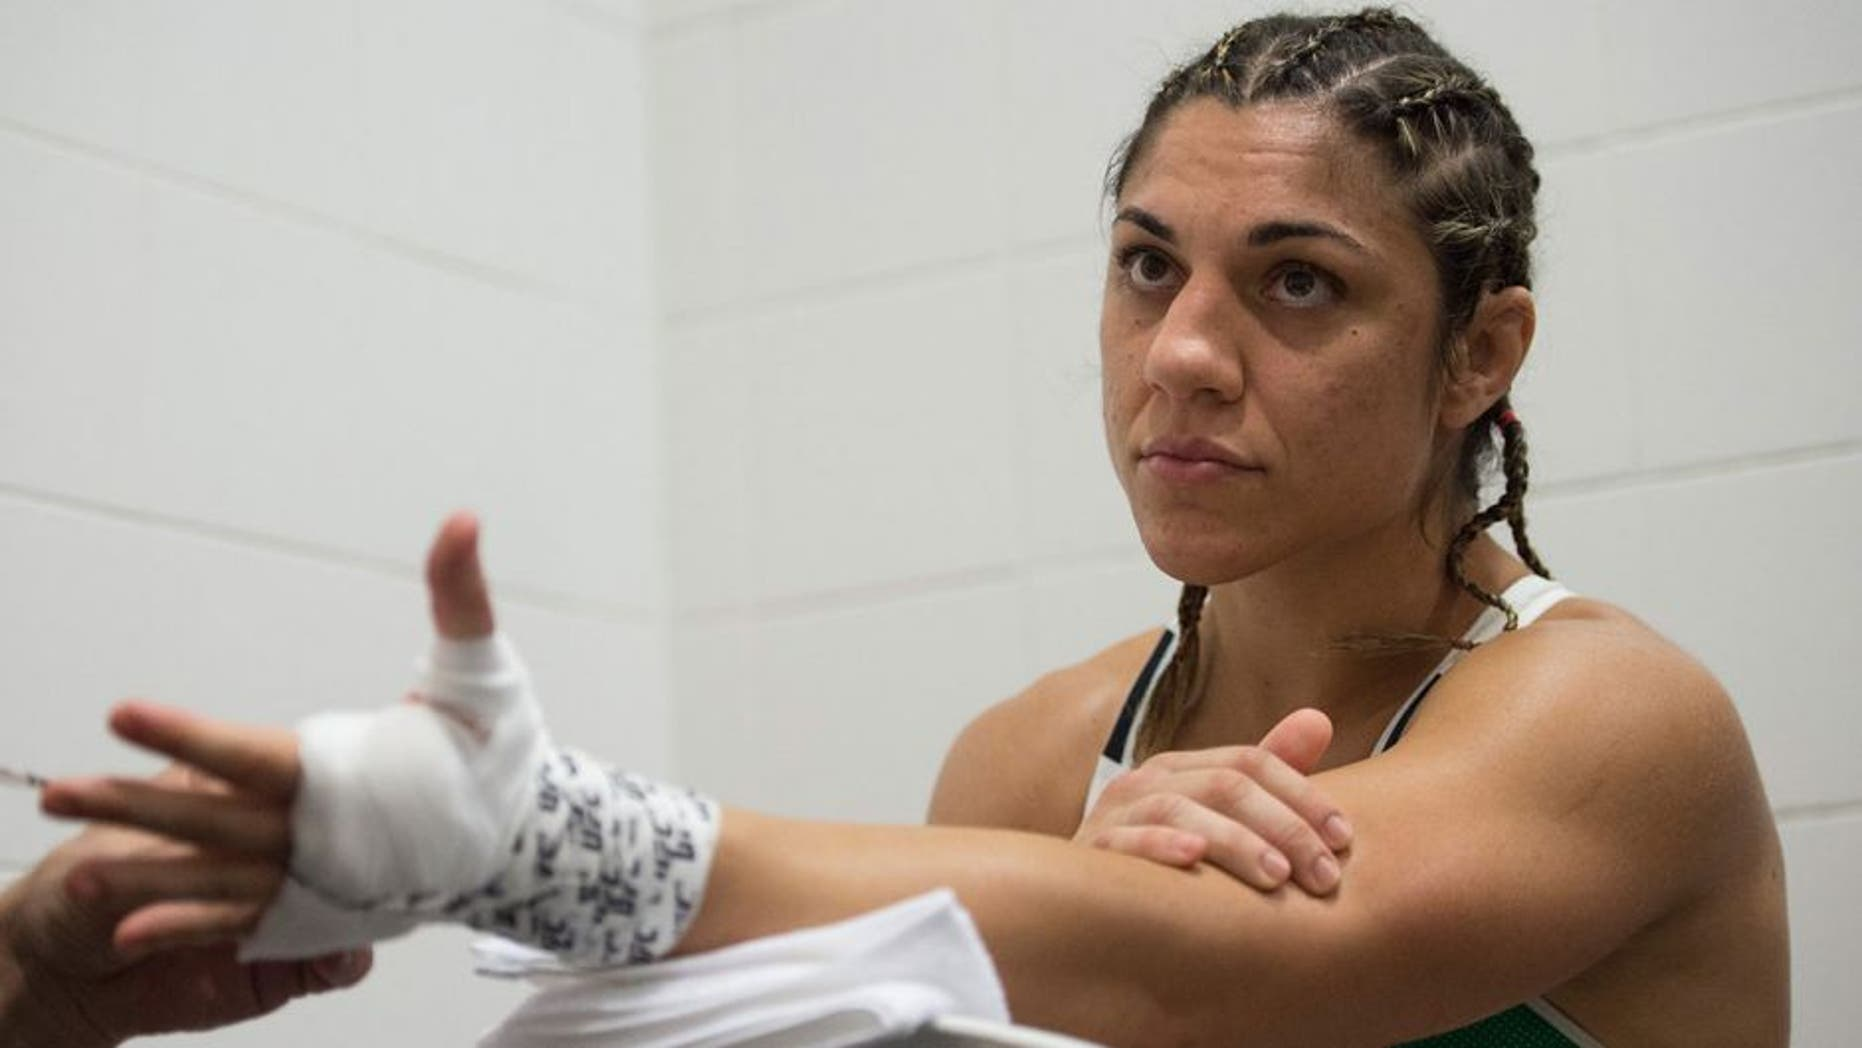 RIO DE JANEIRO, BRAZIL - AUGUST 01: Bethe Correia of Brazil gets her hands wrapped backstage during the UFC 190 event inside HSBC Arena on August 1, 2015 in Rio de Janeiro, Brazil. (Photo by Jeff Bottari/Zuffa LLC/Zuffa LLC via Getty Images)